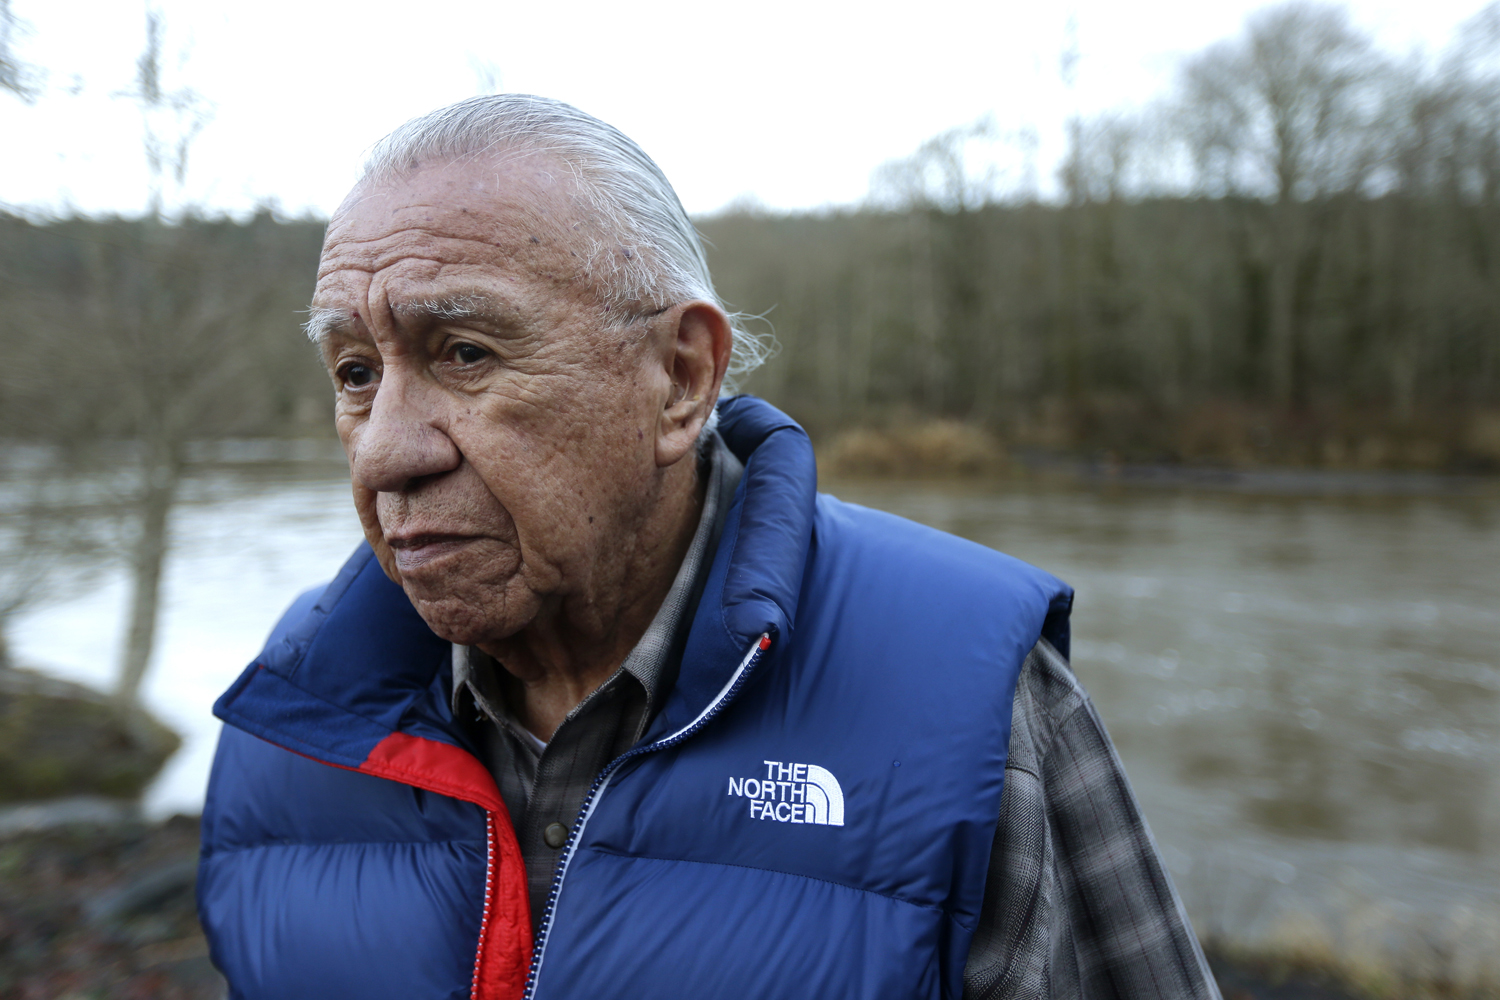 Billy Frank Jr. poses for a photo near Frank's Landing on the Nisqually River in Nisqually, Wash.